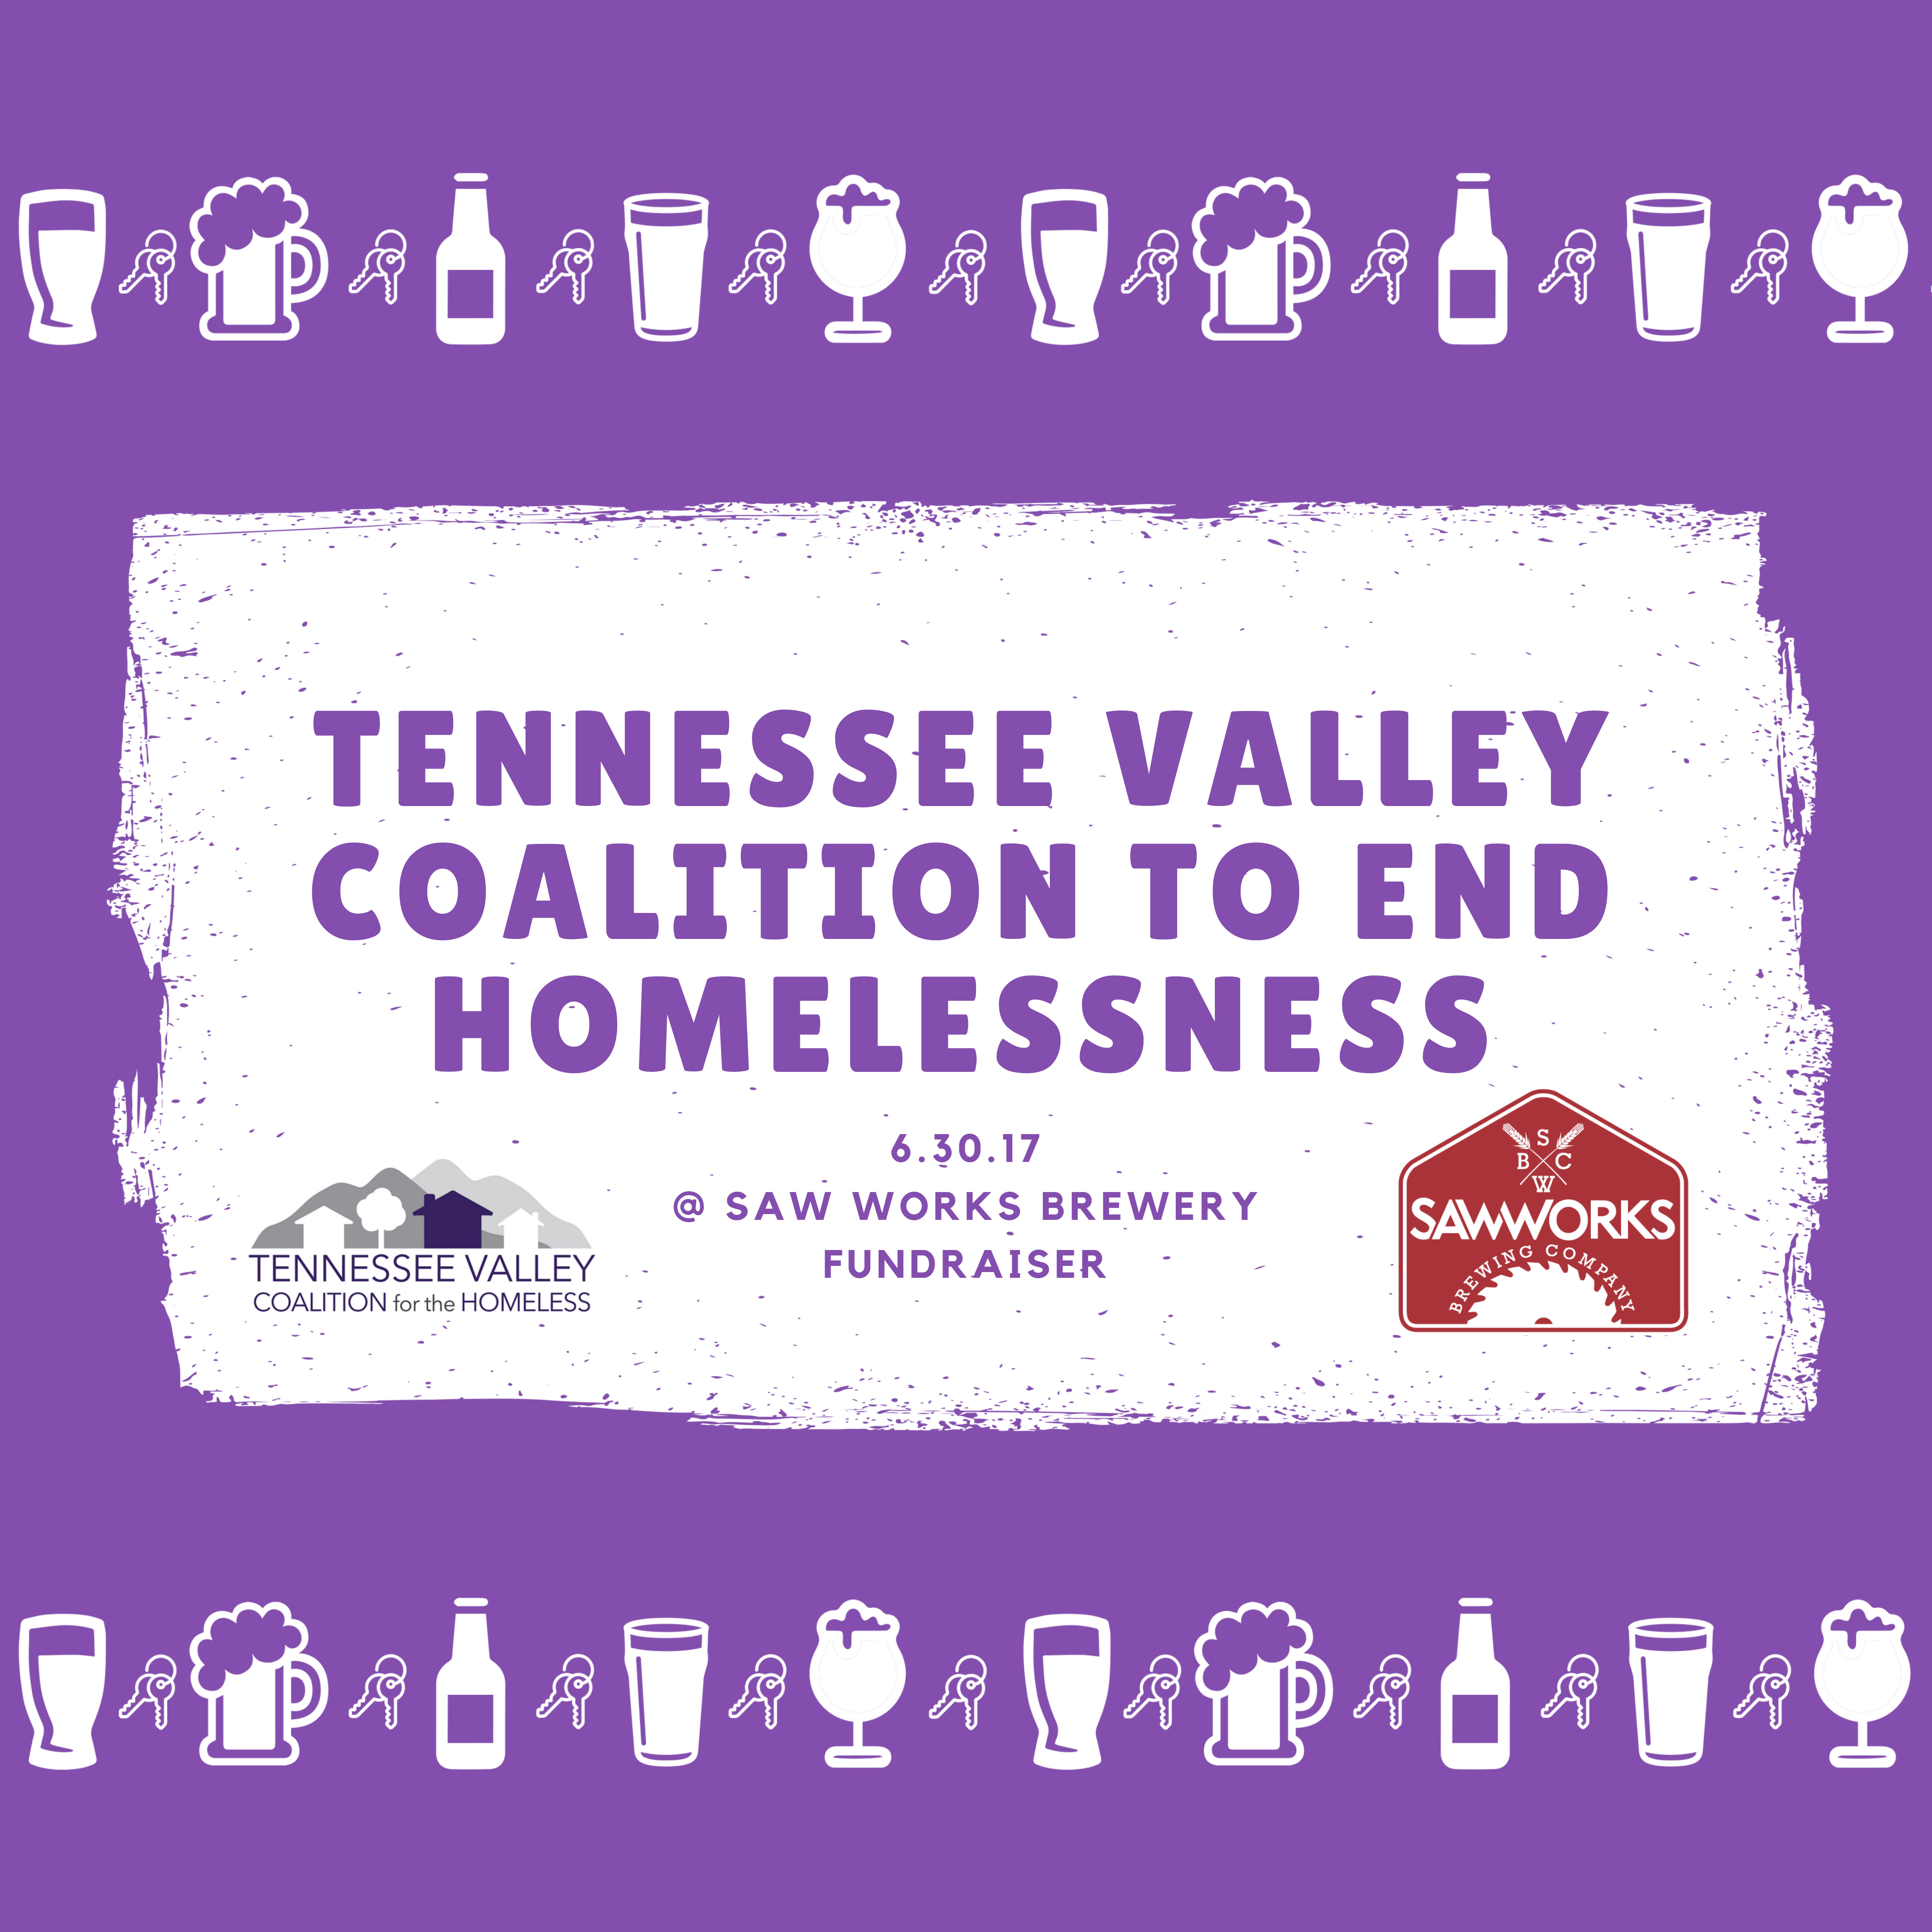 TN Valley Coalition To End Homelessness Fundraiser at SawWorks